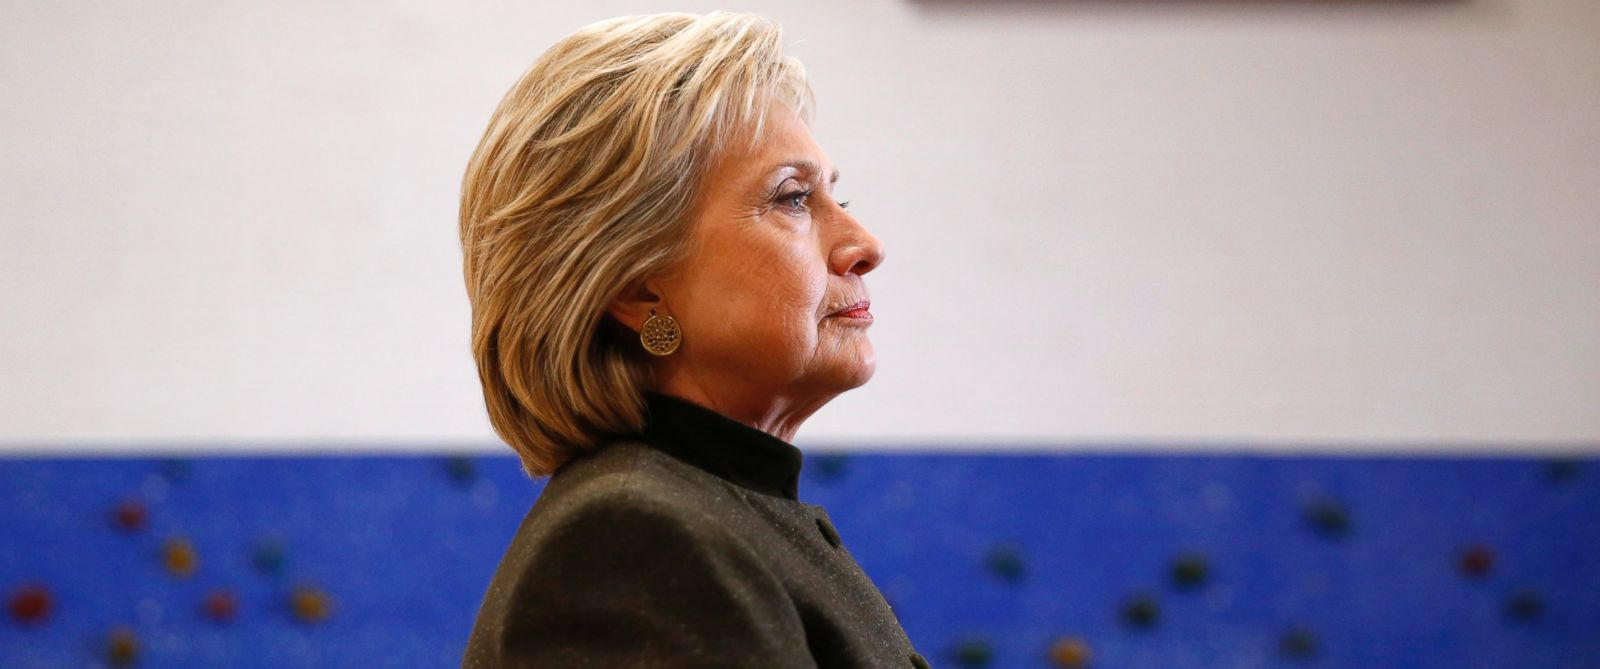 What are the good and bad sides of Hillary Clinton?